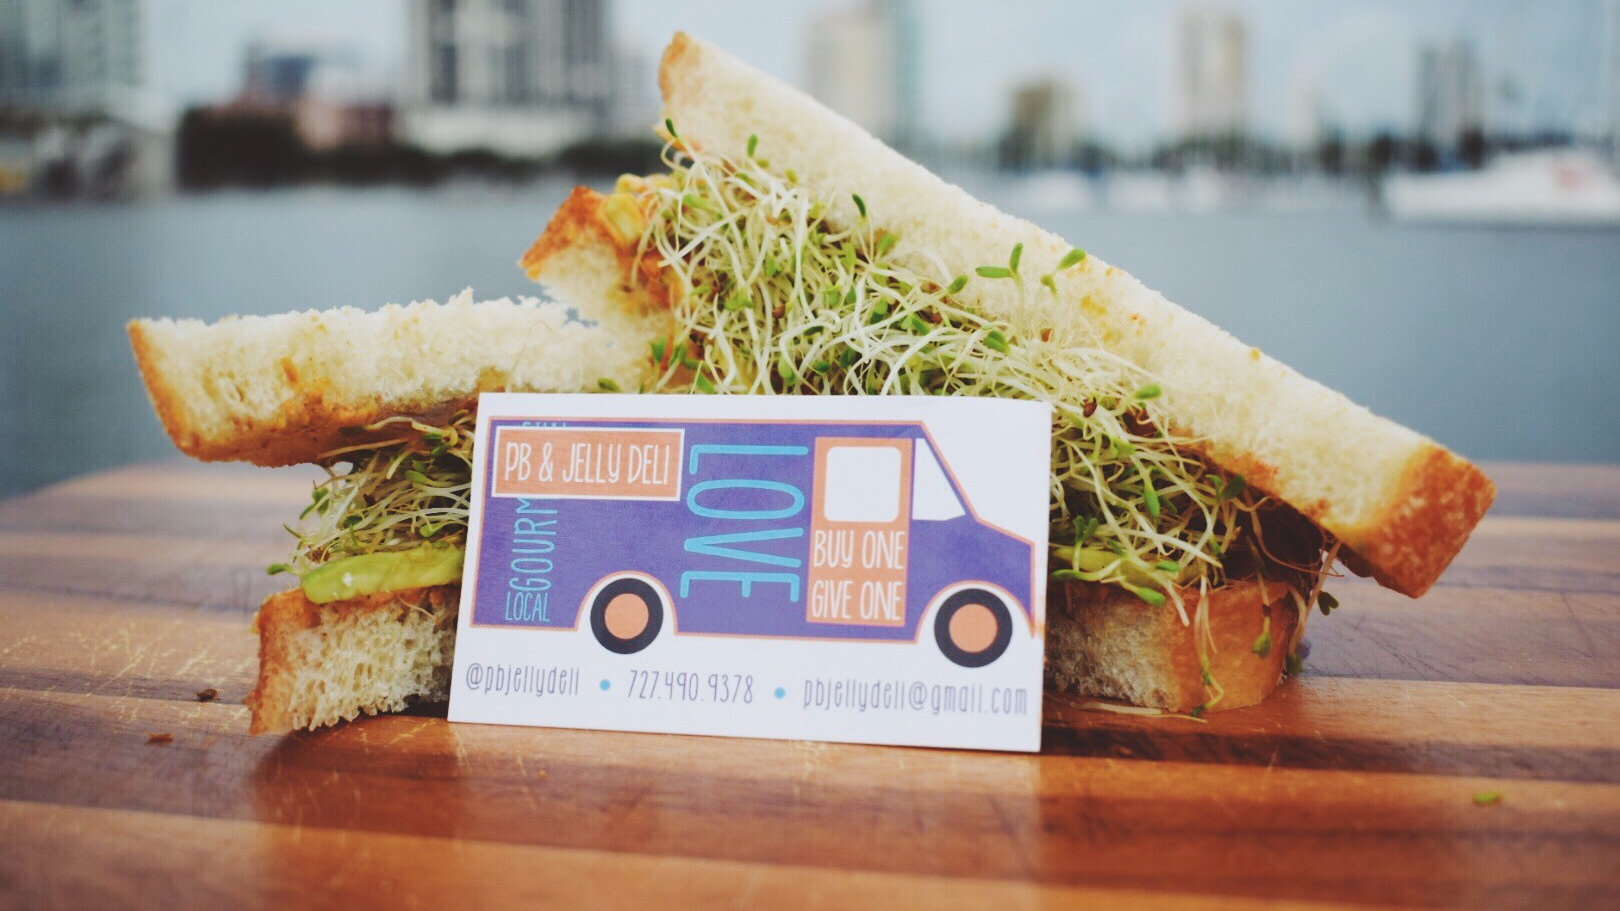 pb and jelly deli business card and st. pete savory sandwich